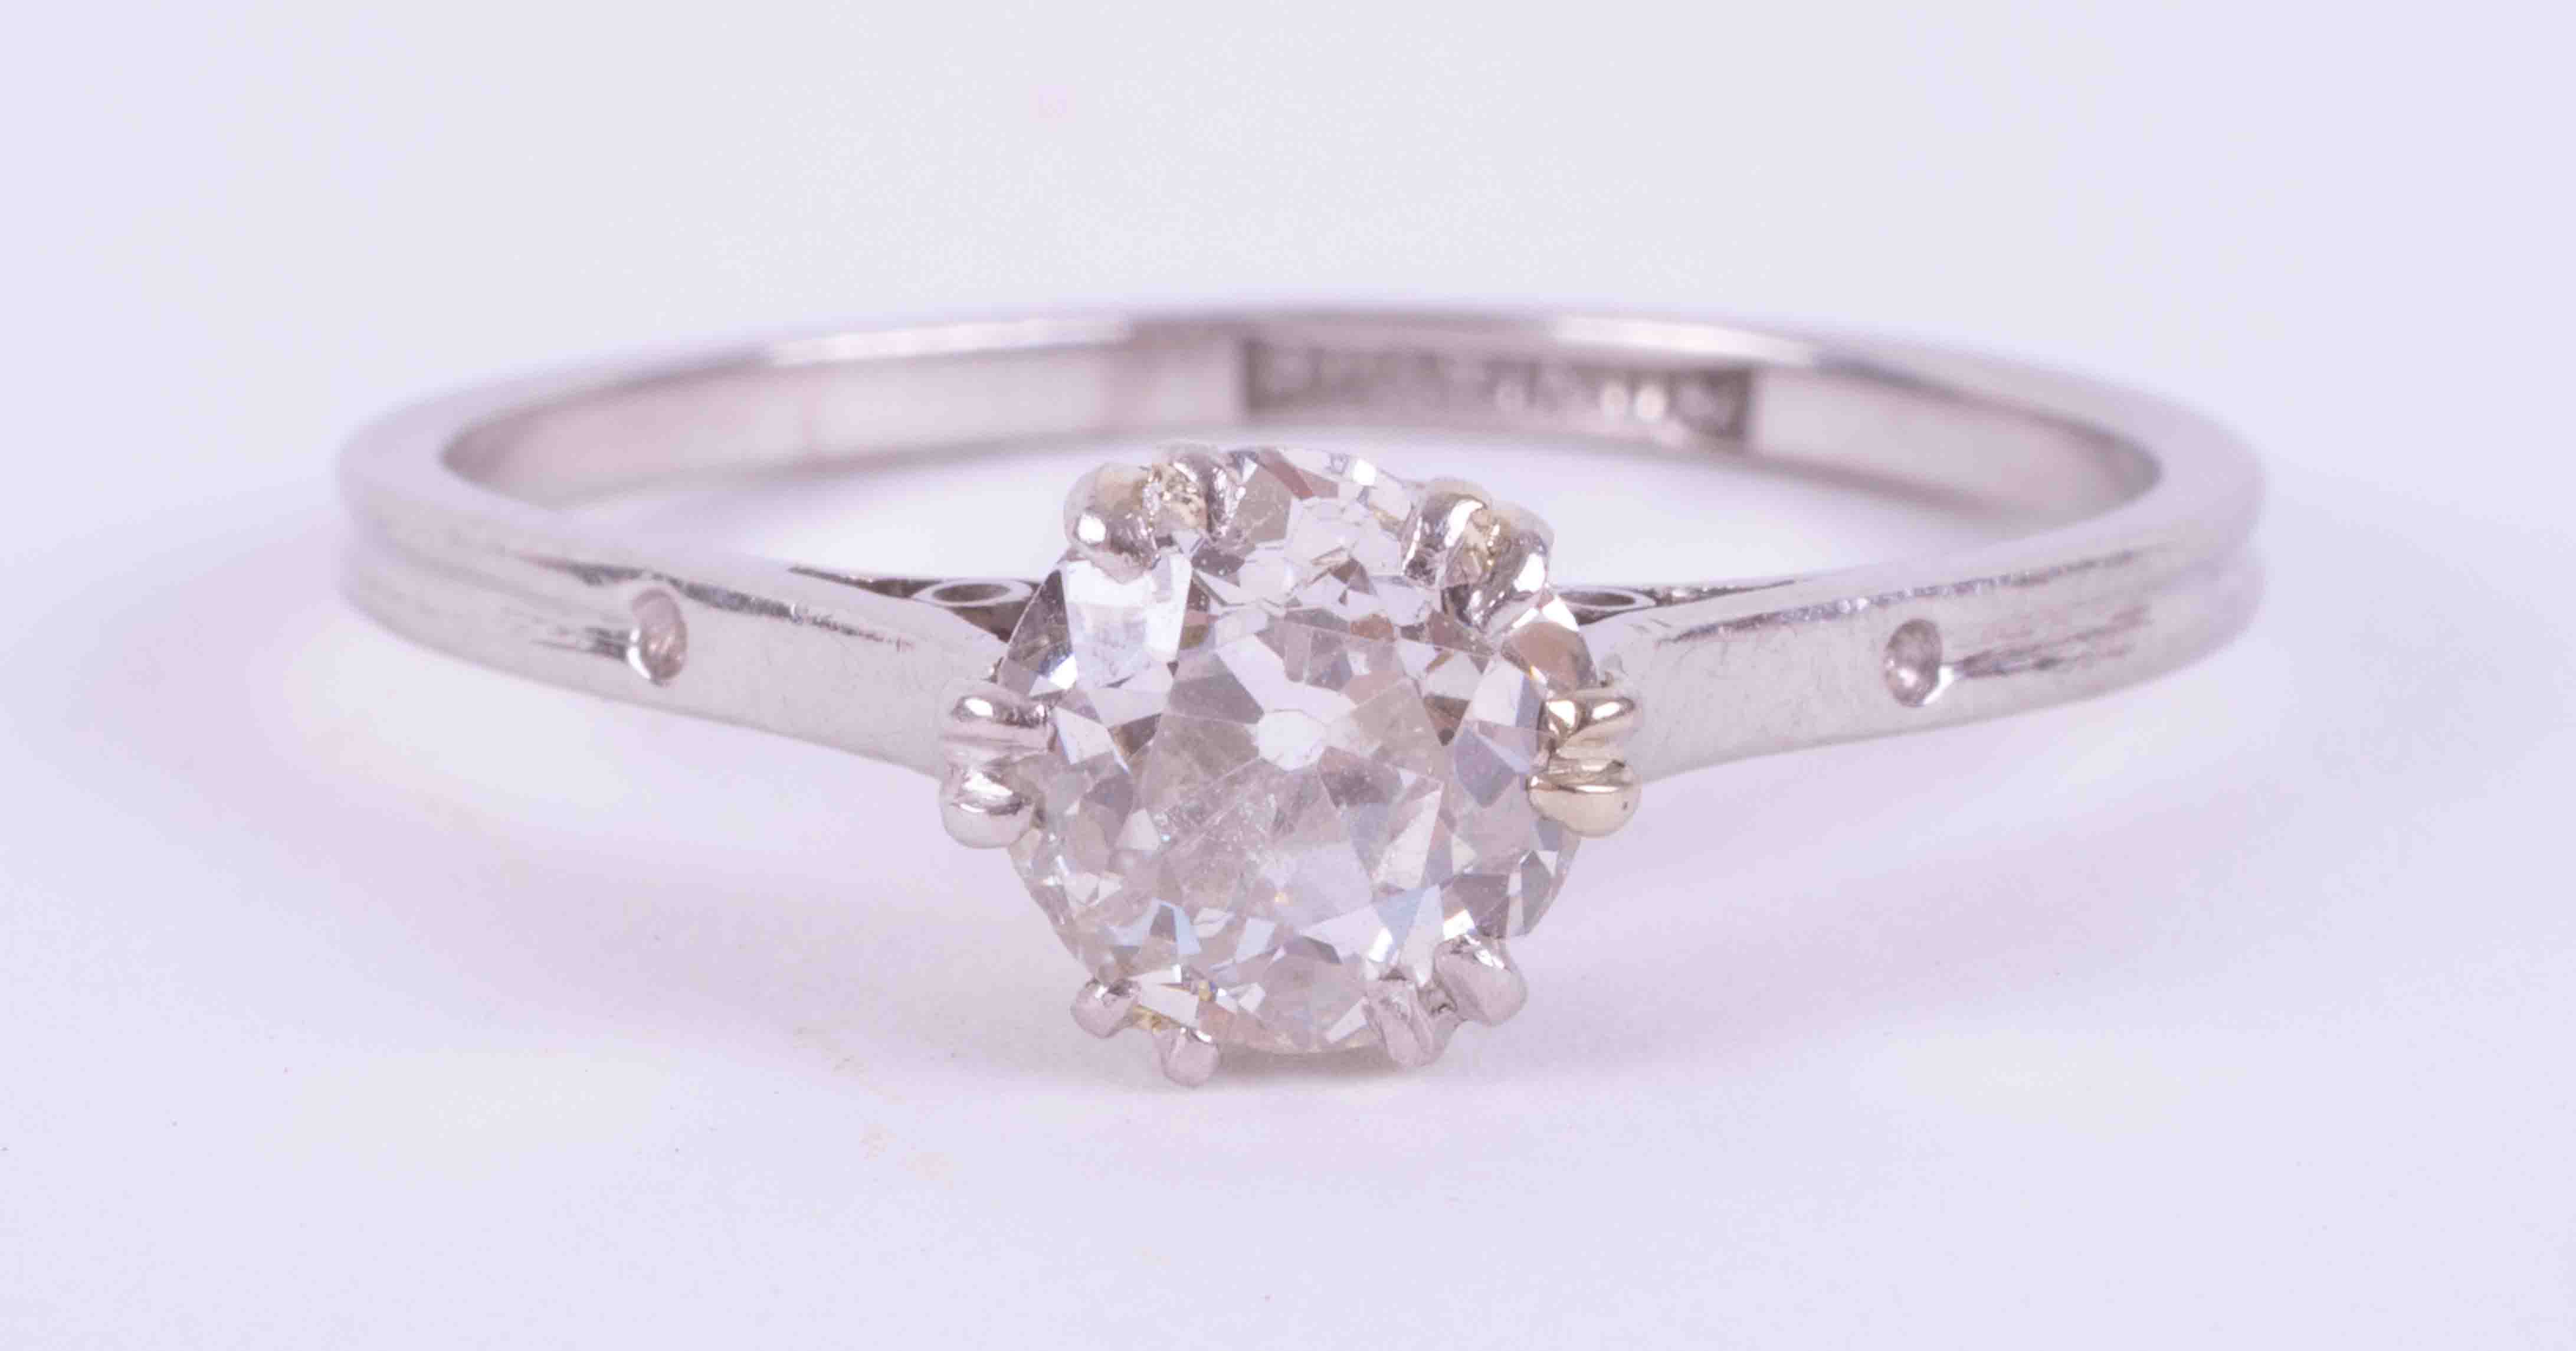 A platinum single stone ring with set with approx. 0.81 carats of old round cut diamond, colour H-